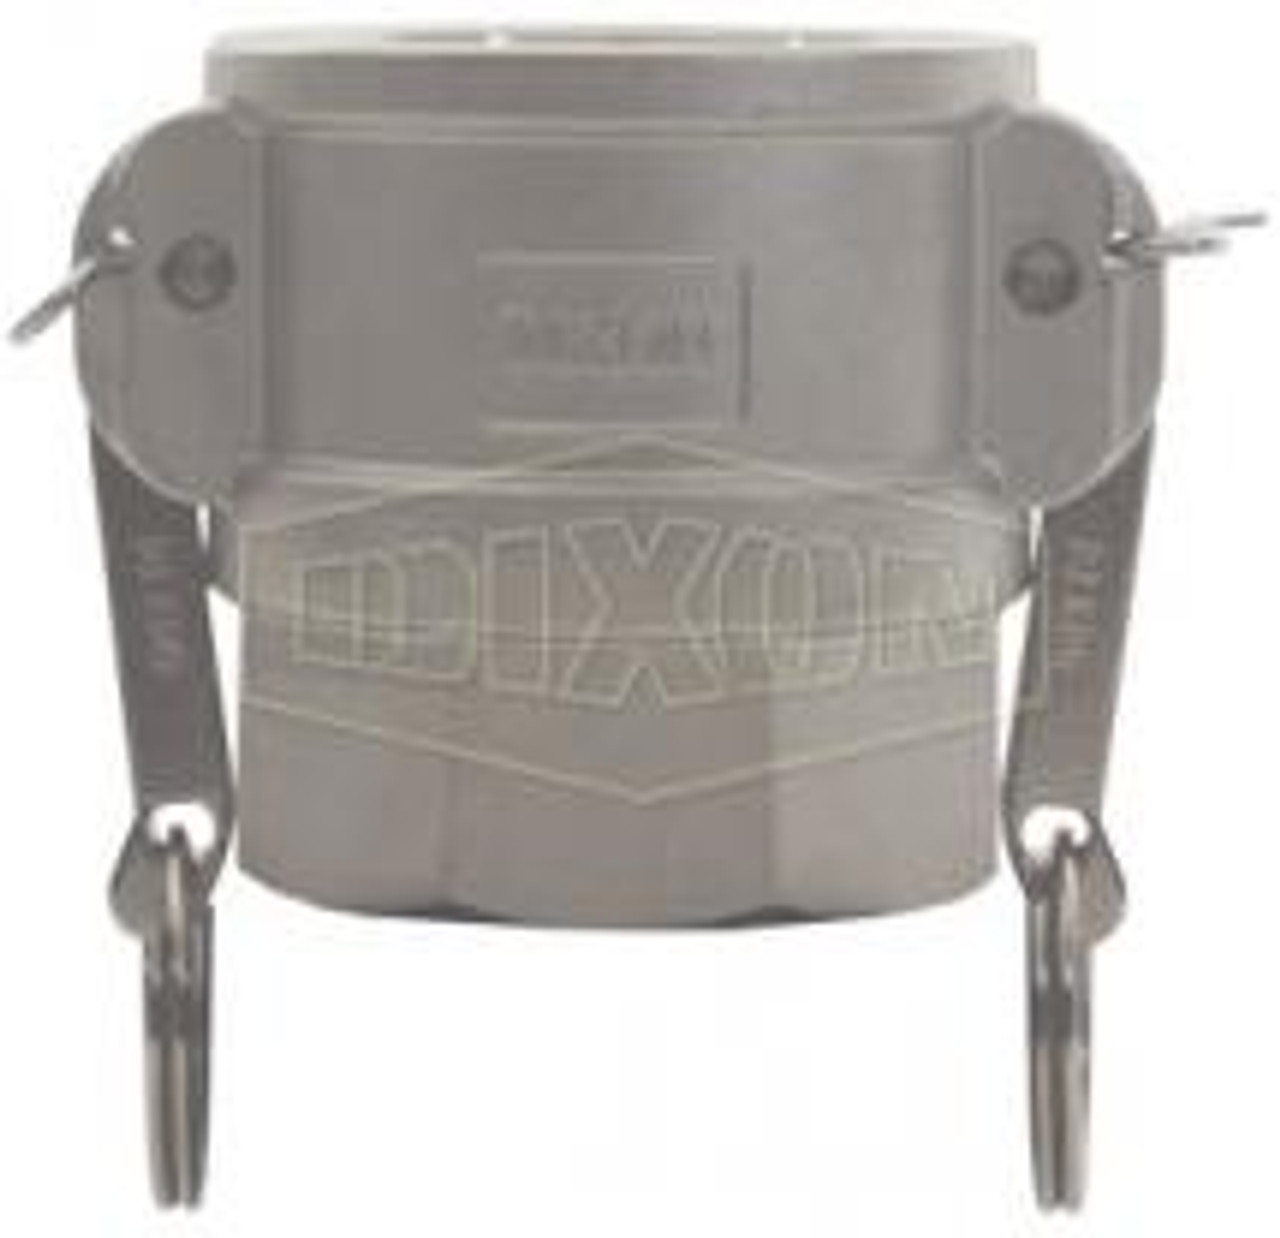 """A 0.75"""" female coupler-female thread Cam Lock manufactured using stainless steel."""